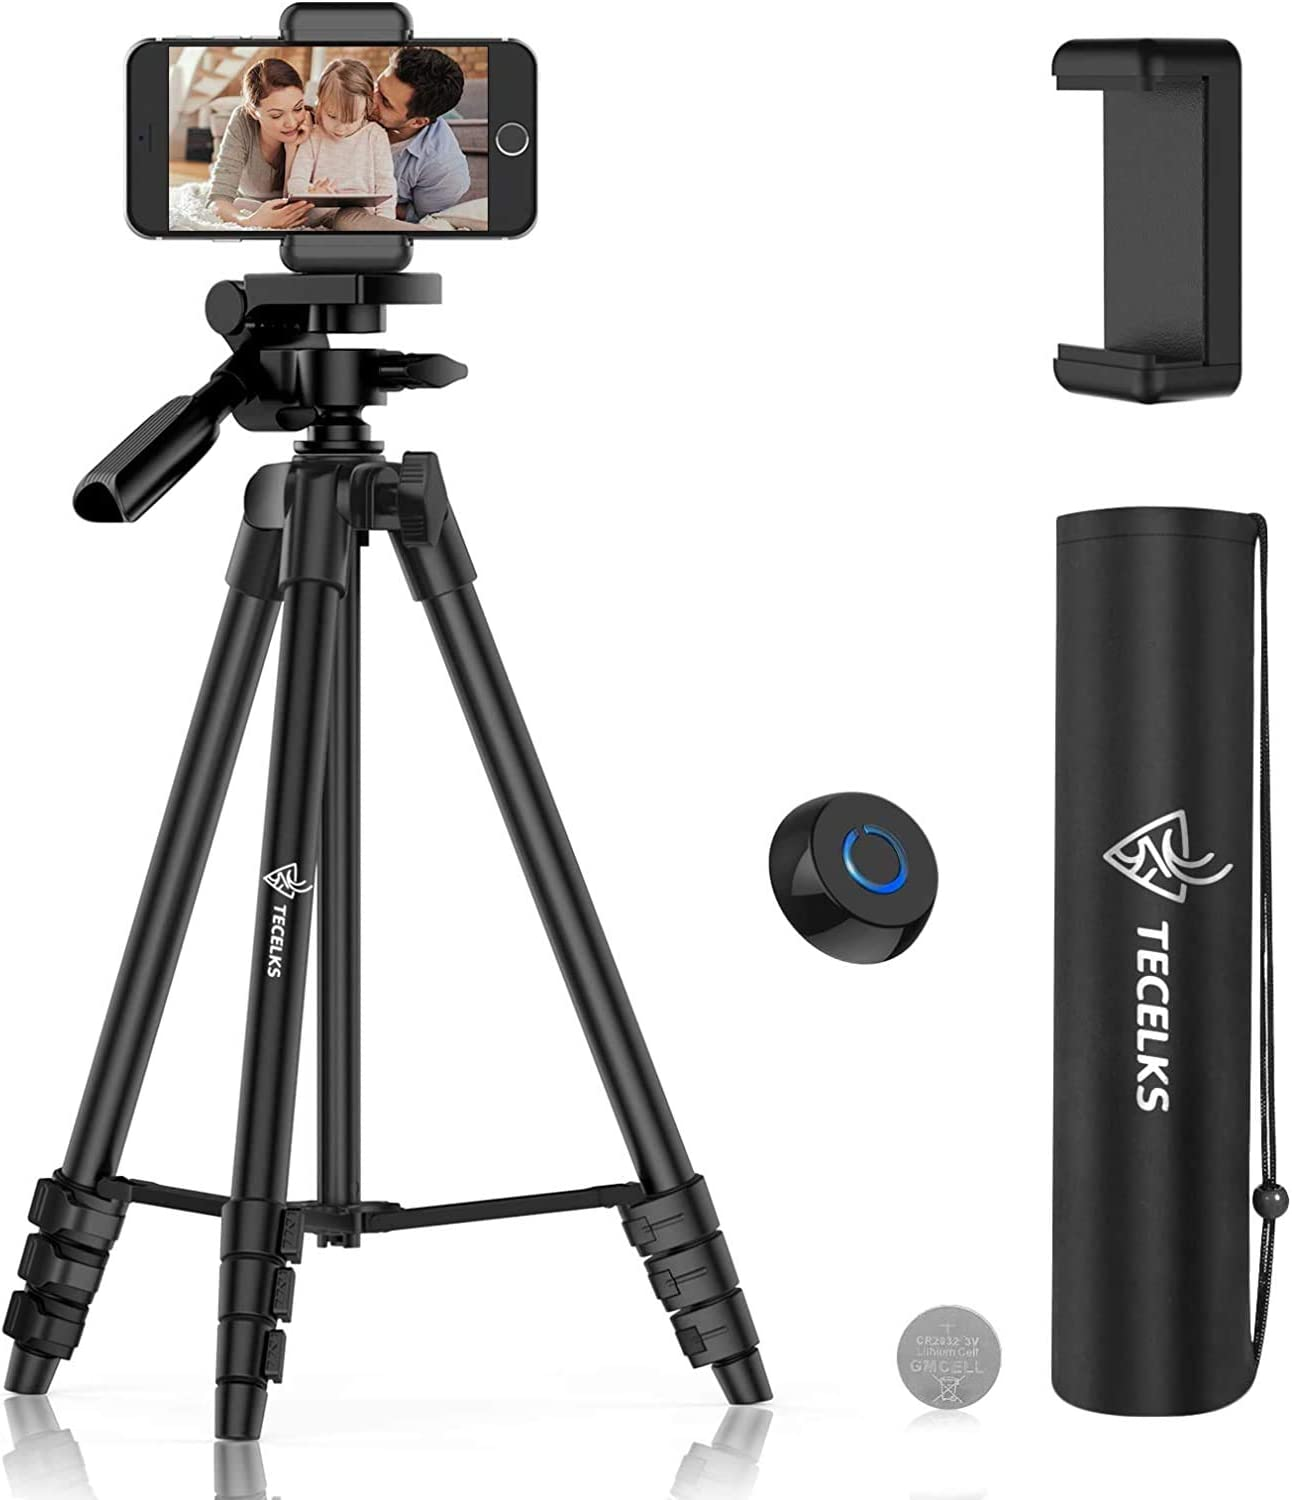 """Cell Phone Tripod 55"""", Lightweight Aluminum Travel/Camera Tripod Stand with Wireless Remote, Carry Bag for TIK Tok/Photography/Live Stream/YouTube Video, Compatible with iOS and Android : Camera & Photo"""